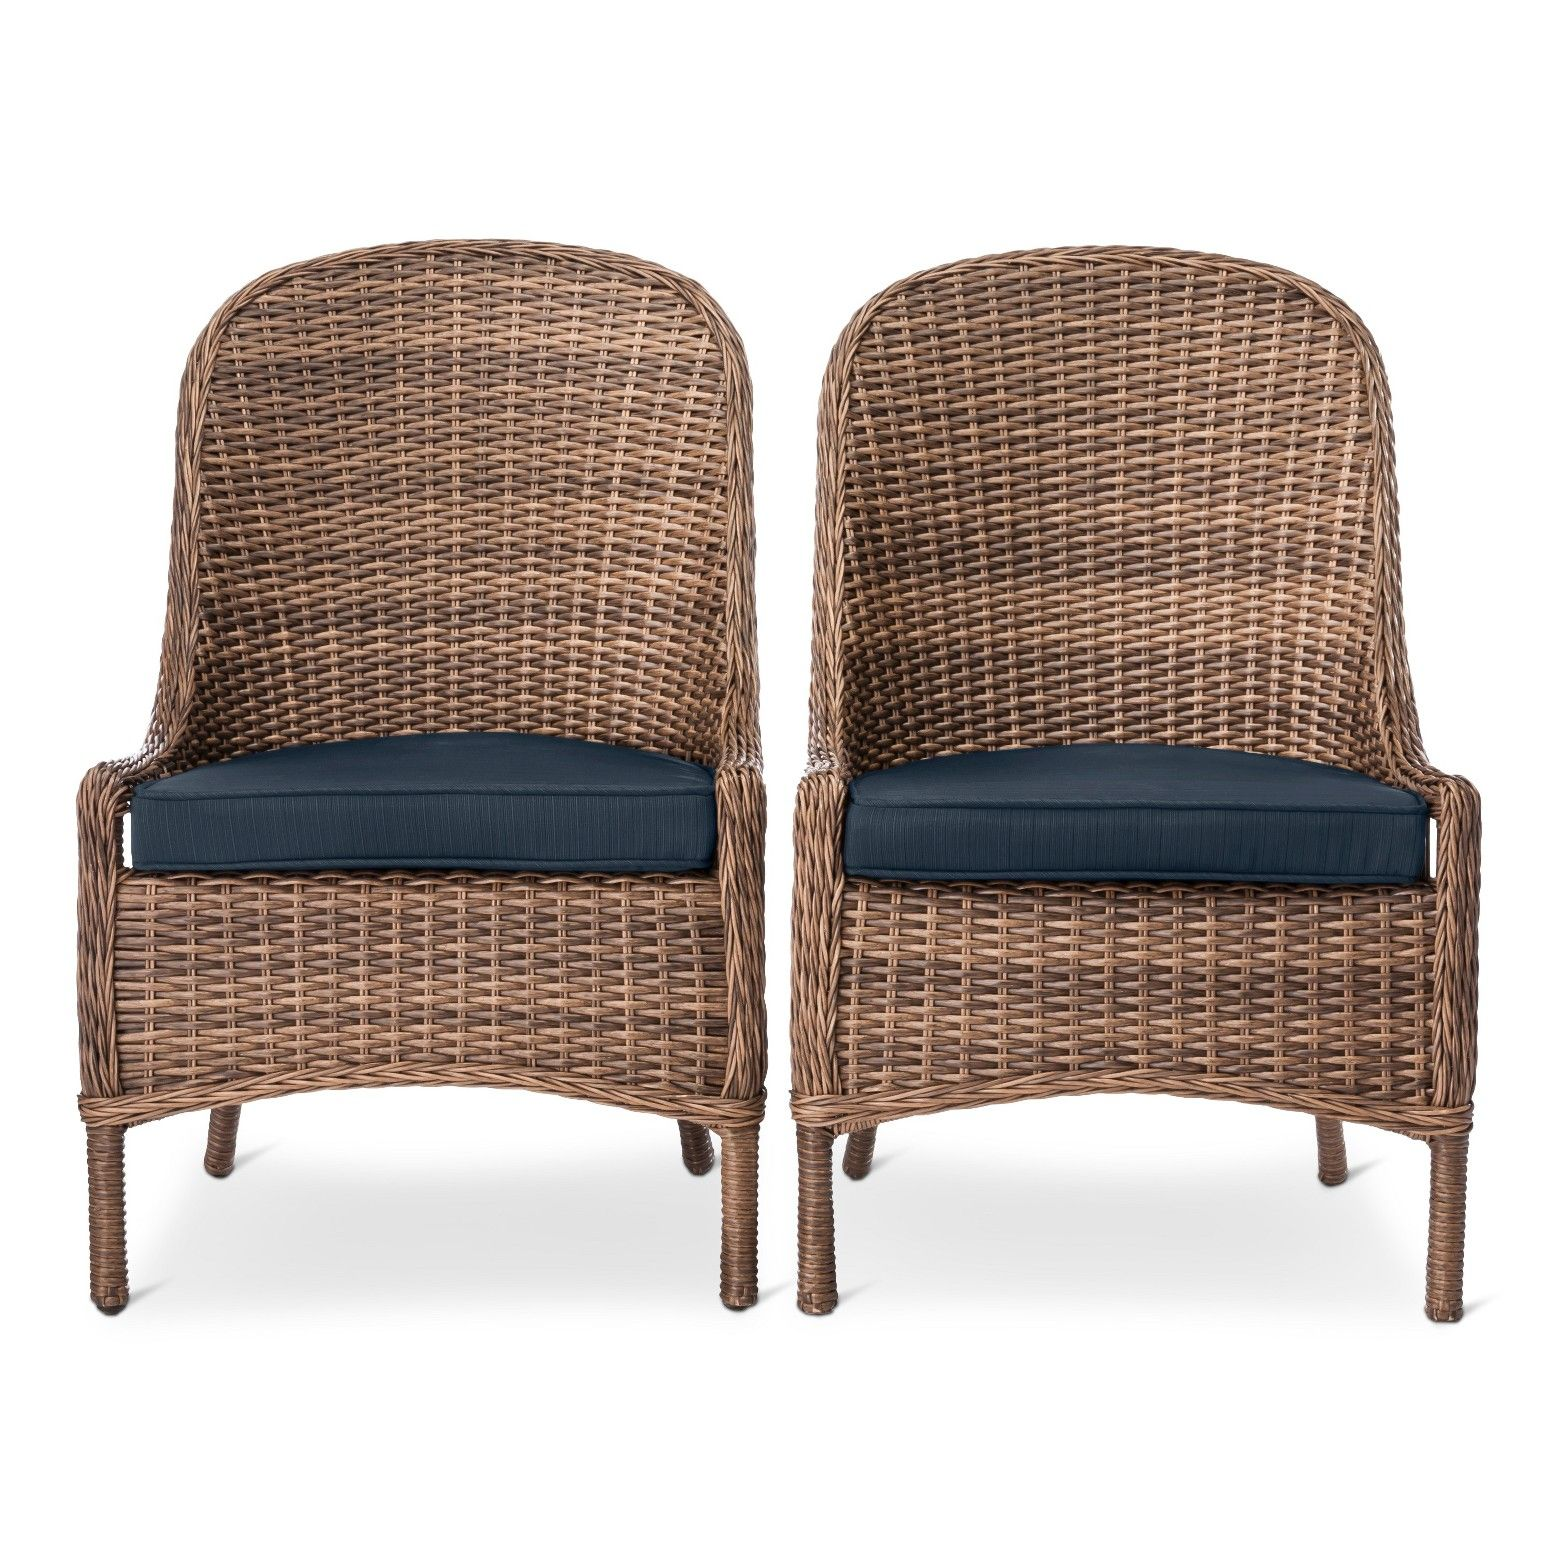 Traditional good looks keep this Mayhew All Weather Wicker